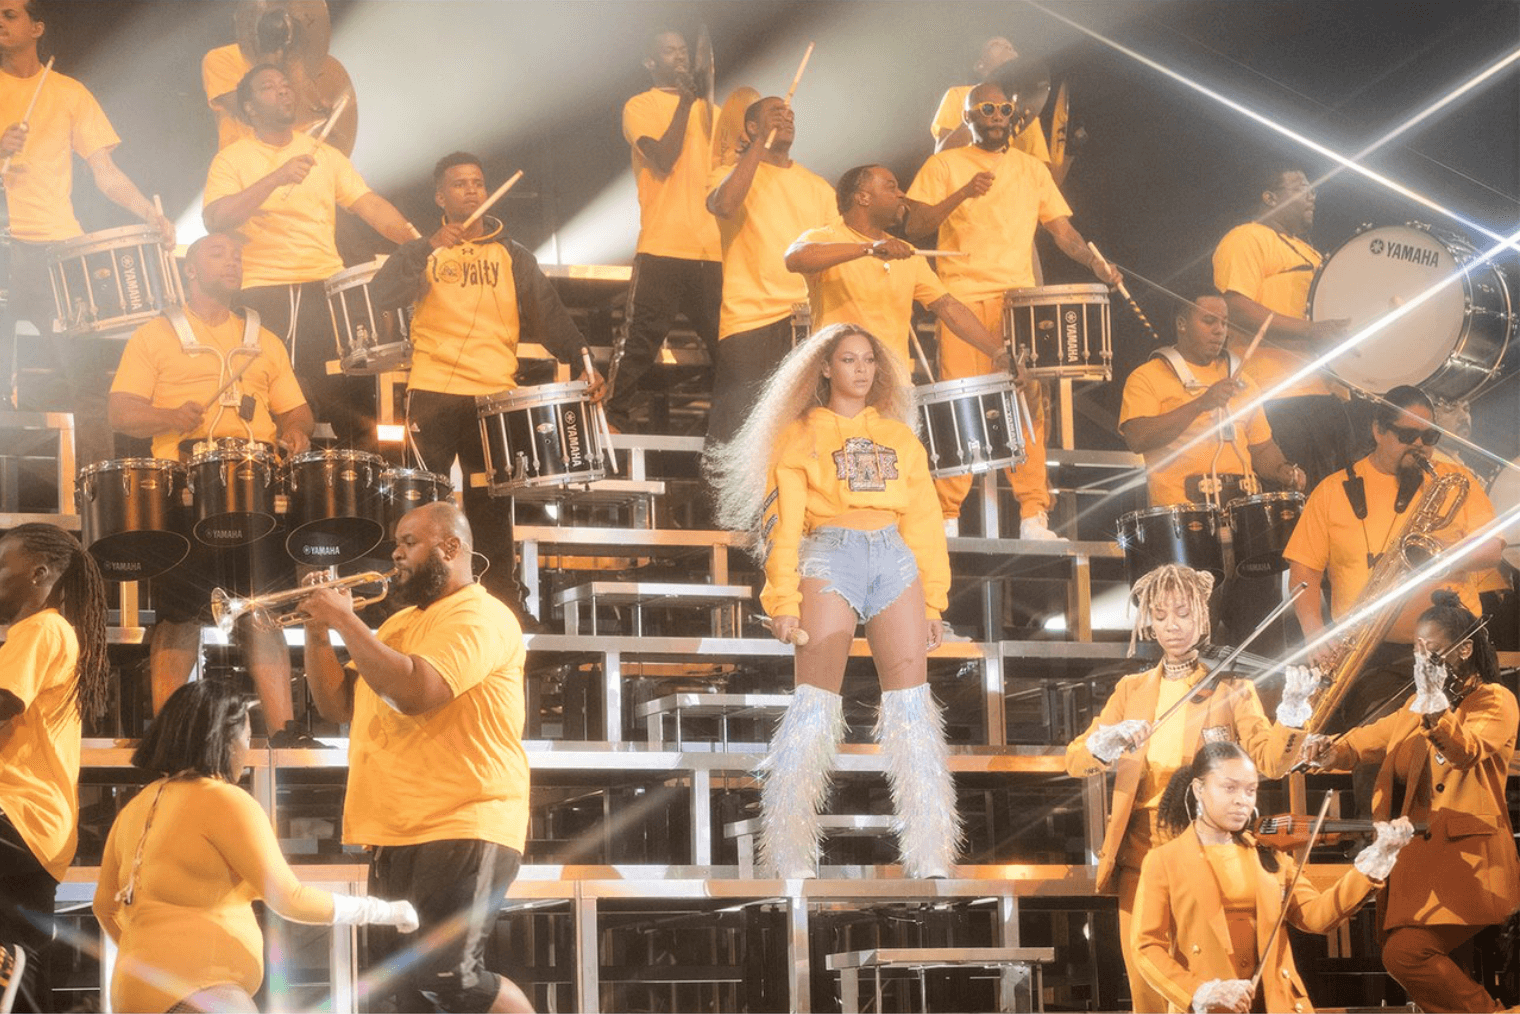 How To Apply for Beyoncé's Coachella Scholarship